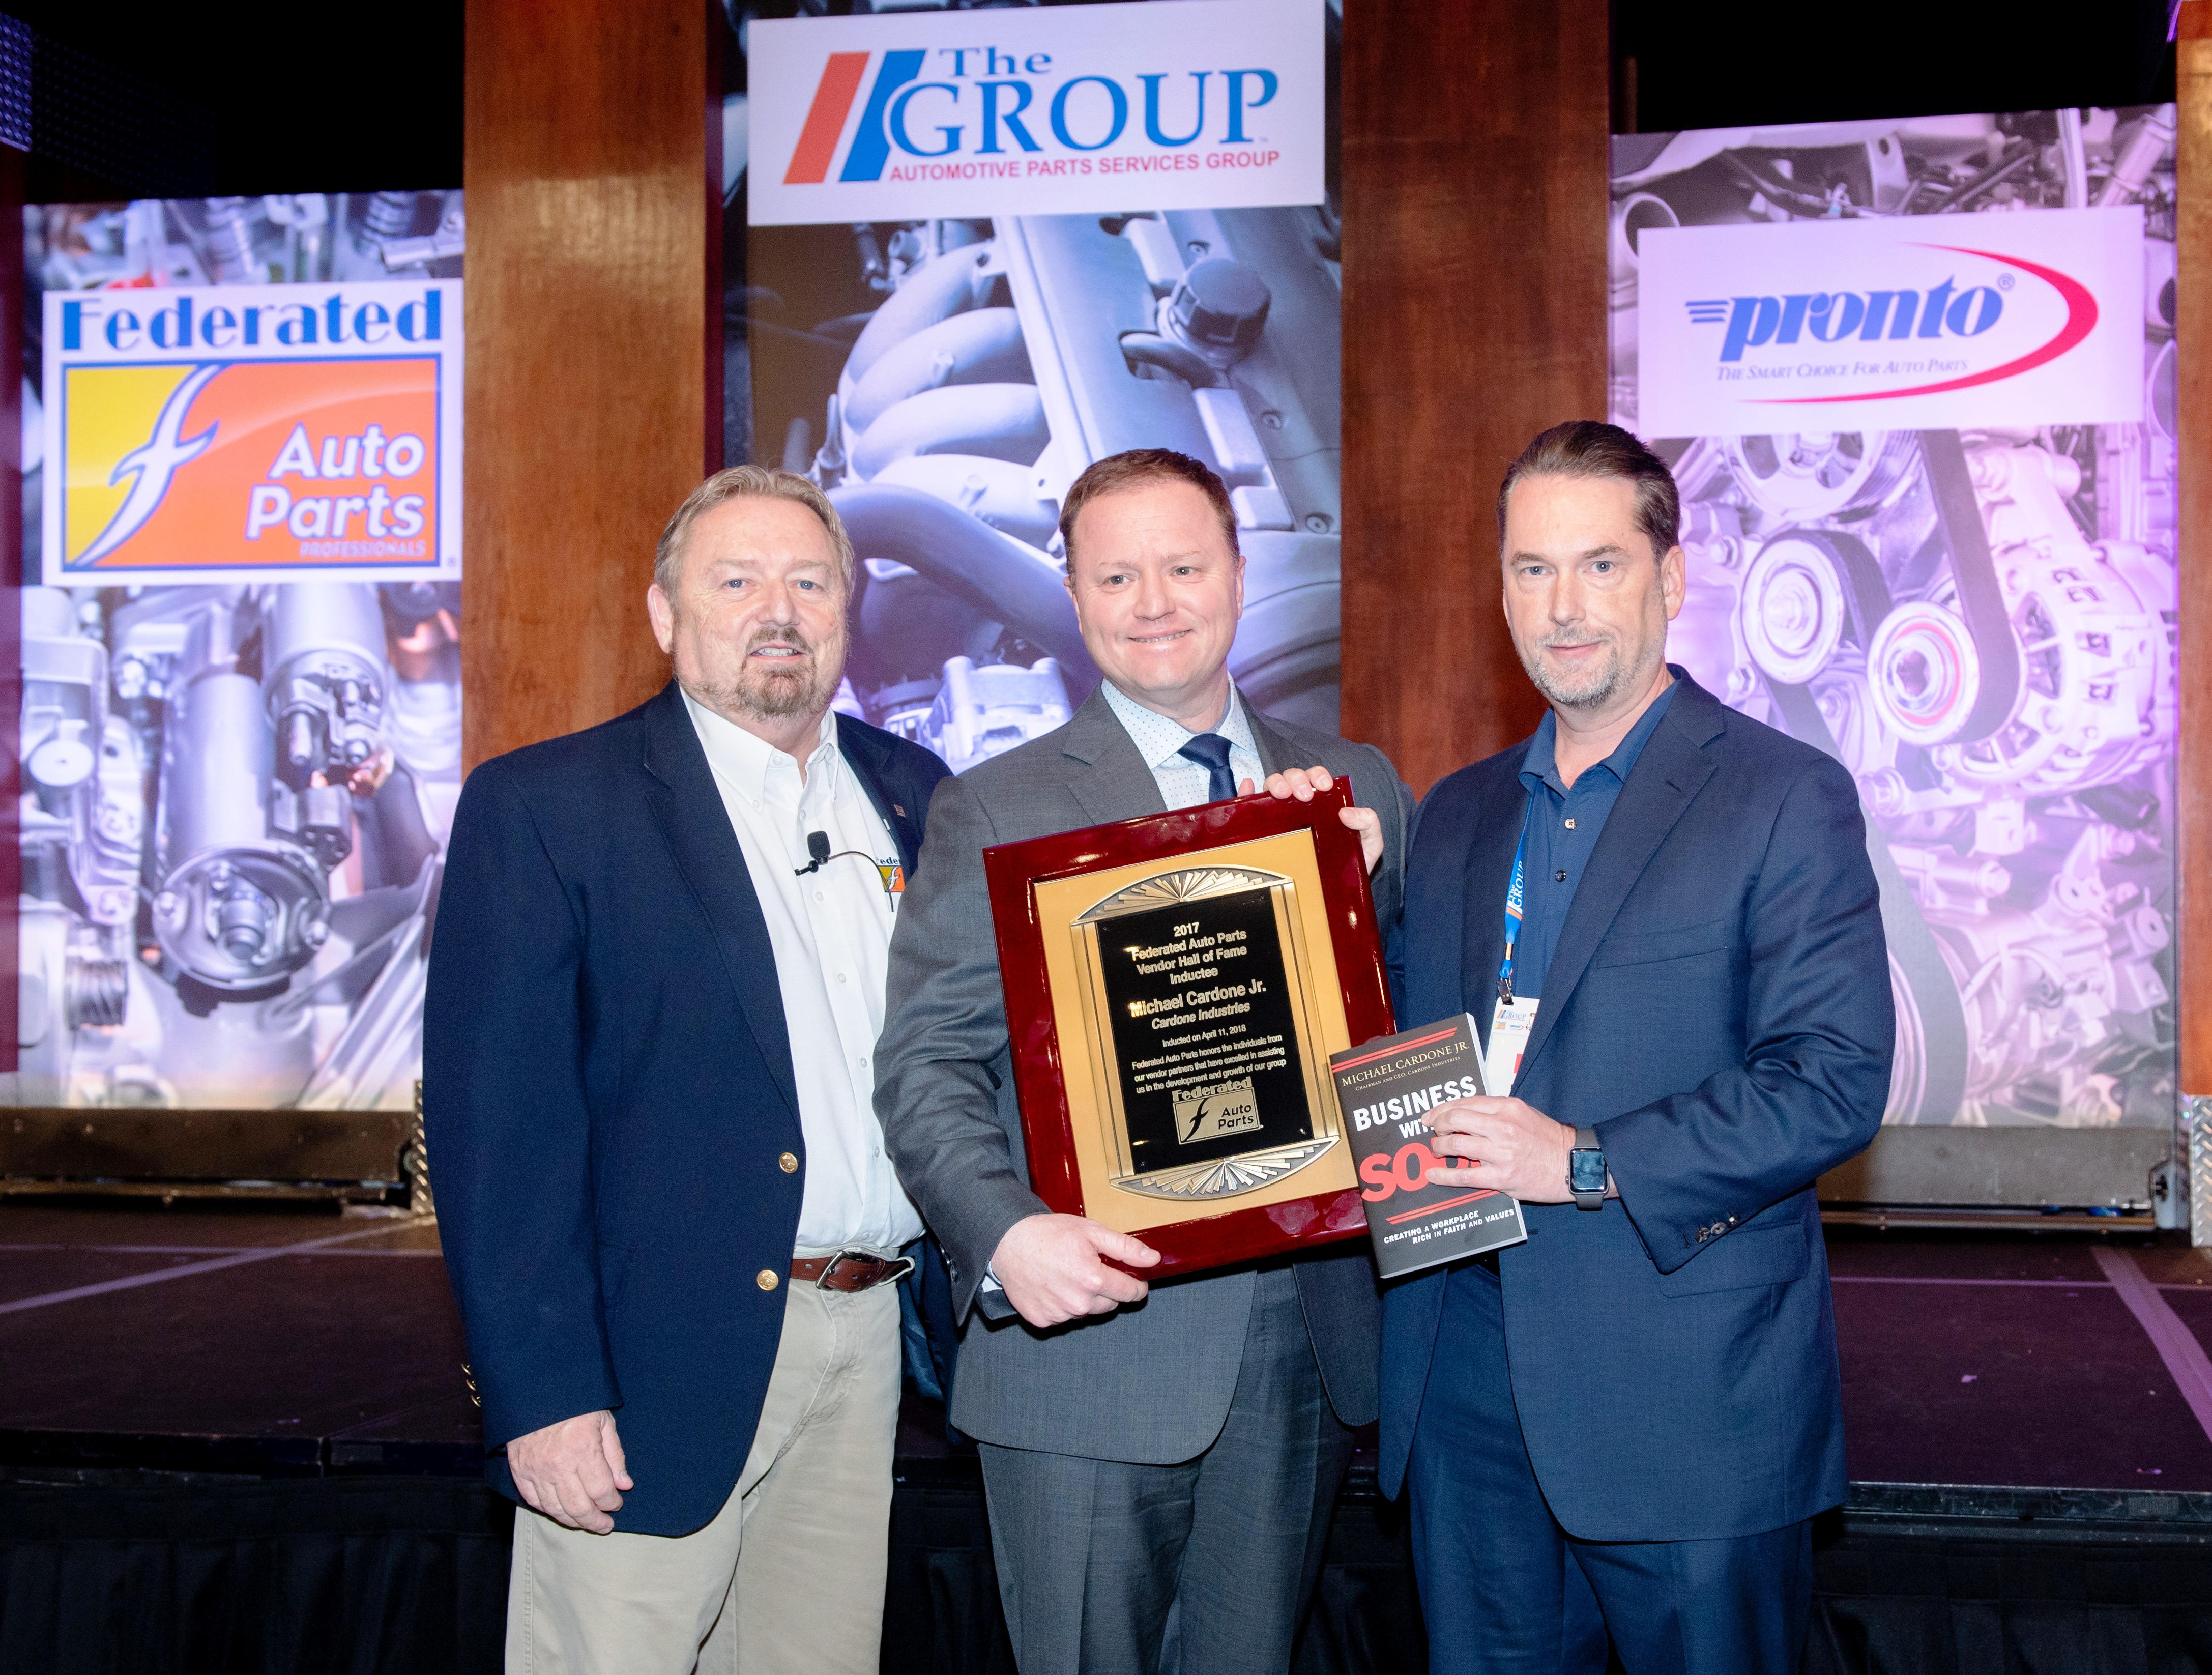 Federated Inducts Michael Cardone Jr. into Vendor Hall of Fame